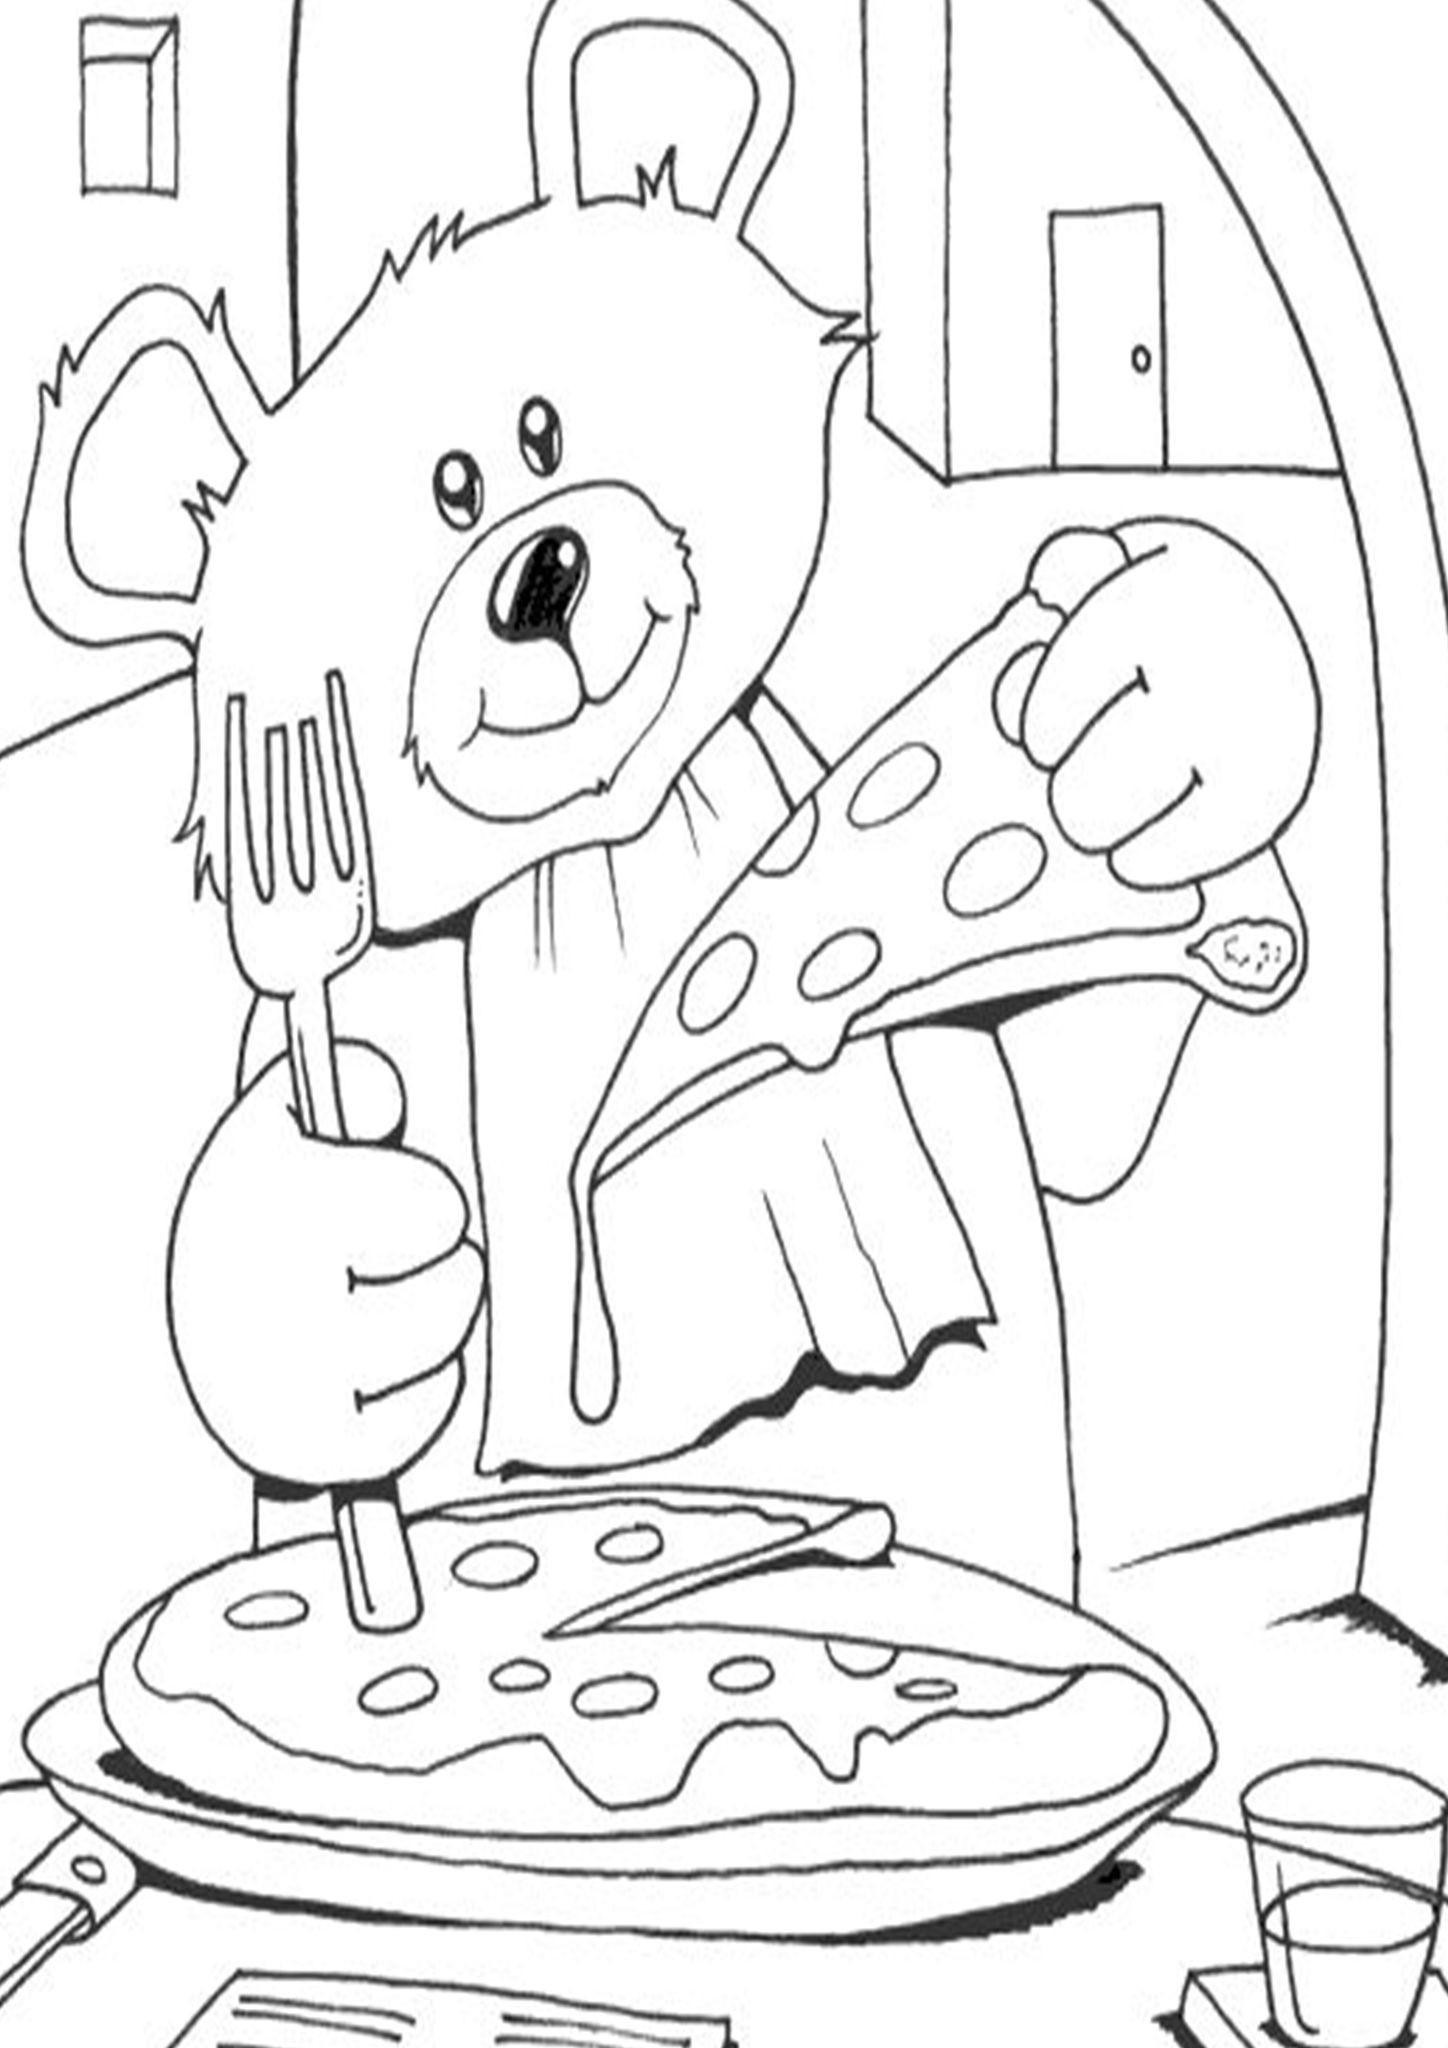 Free Easy To Print Pizza Coloring Pages Pizza Coloring Page Teddy Bear Coloring Pages Bear Coloring Pages